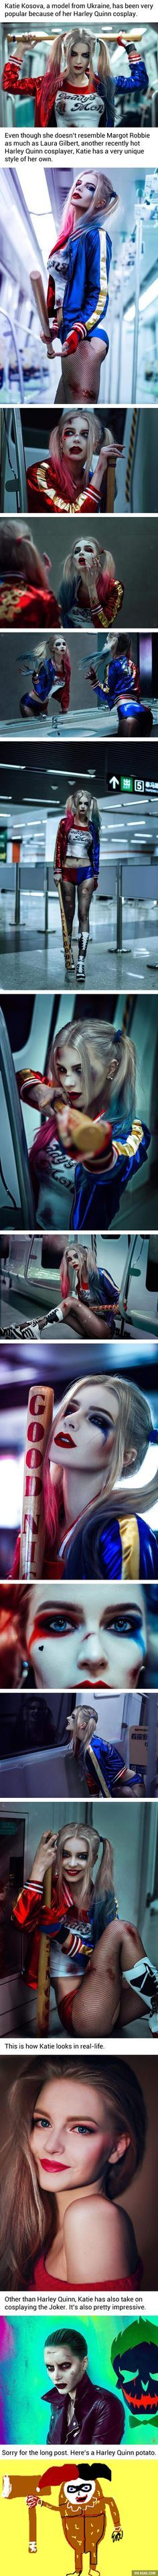 90 Mejores Imgenes De Harley Quinn Suide Squad Joker Gibson Melody Maker Wiring Diagram Meet The Cosplayer From Ukraine Internet Is Talking About